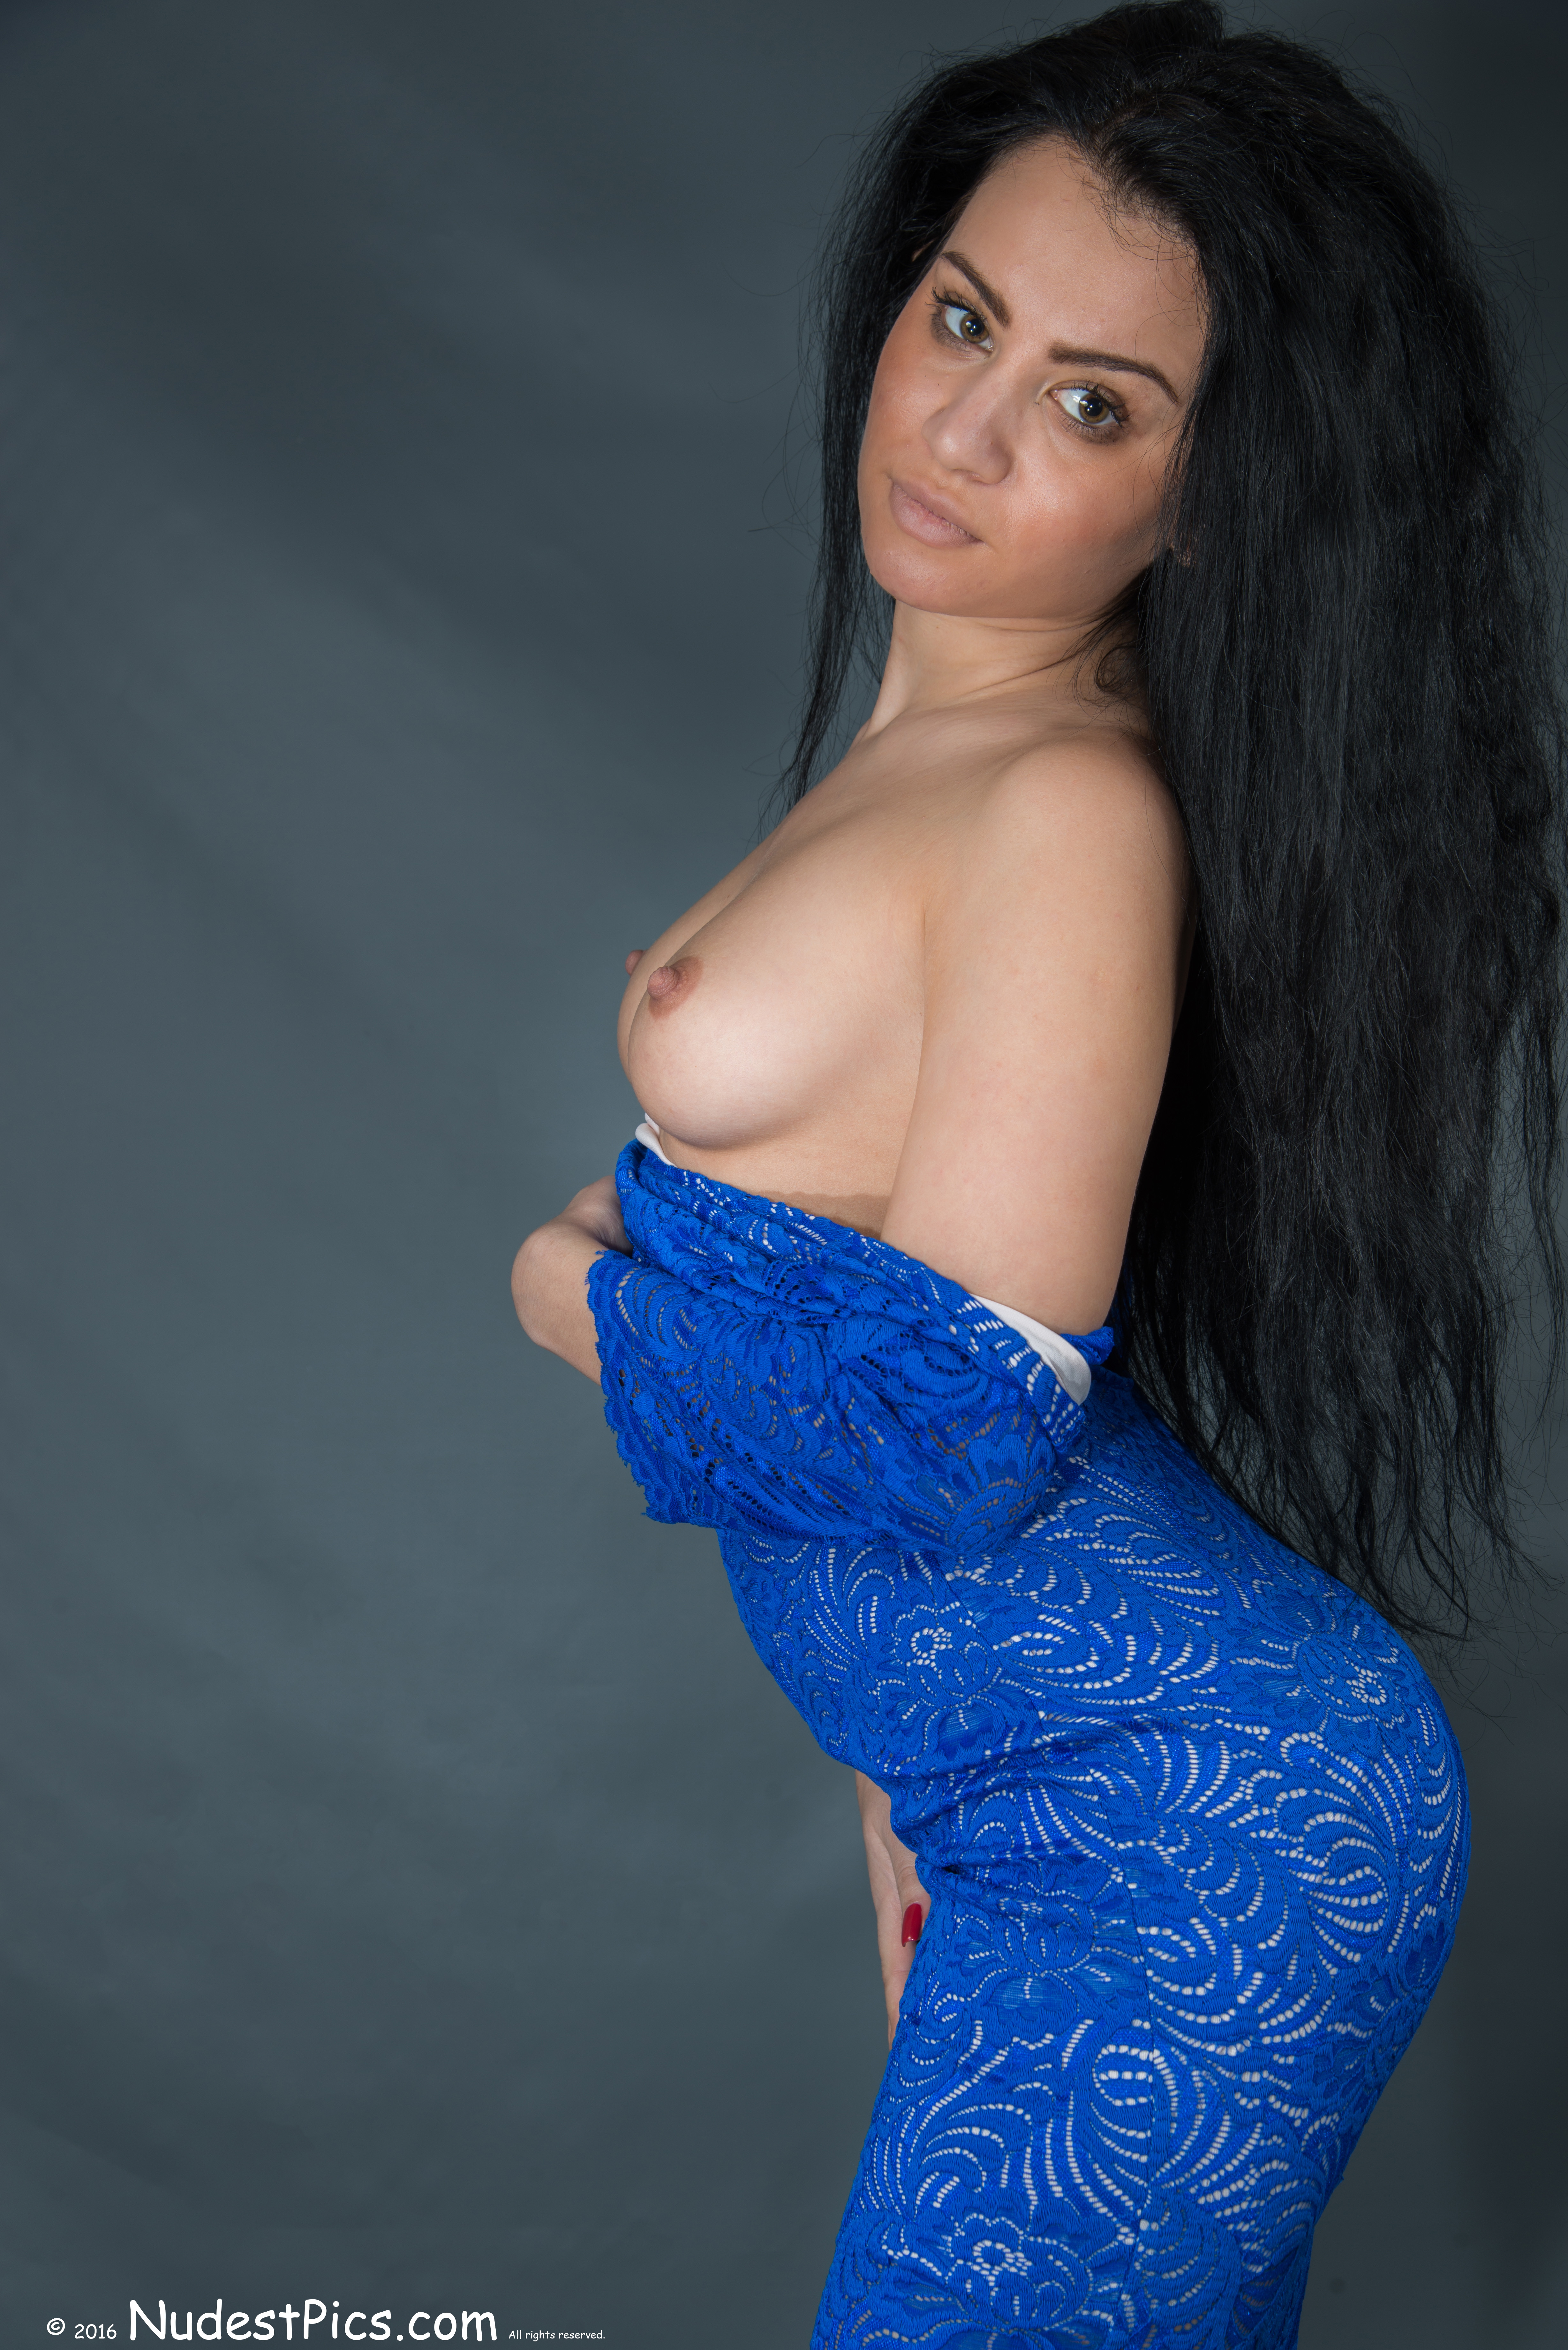 Long Haired Latina Brunette Exposing Breasts HD